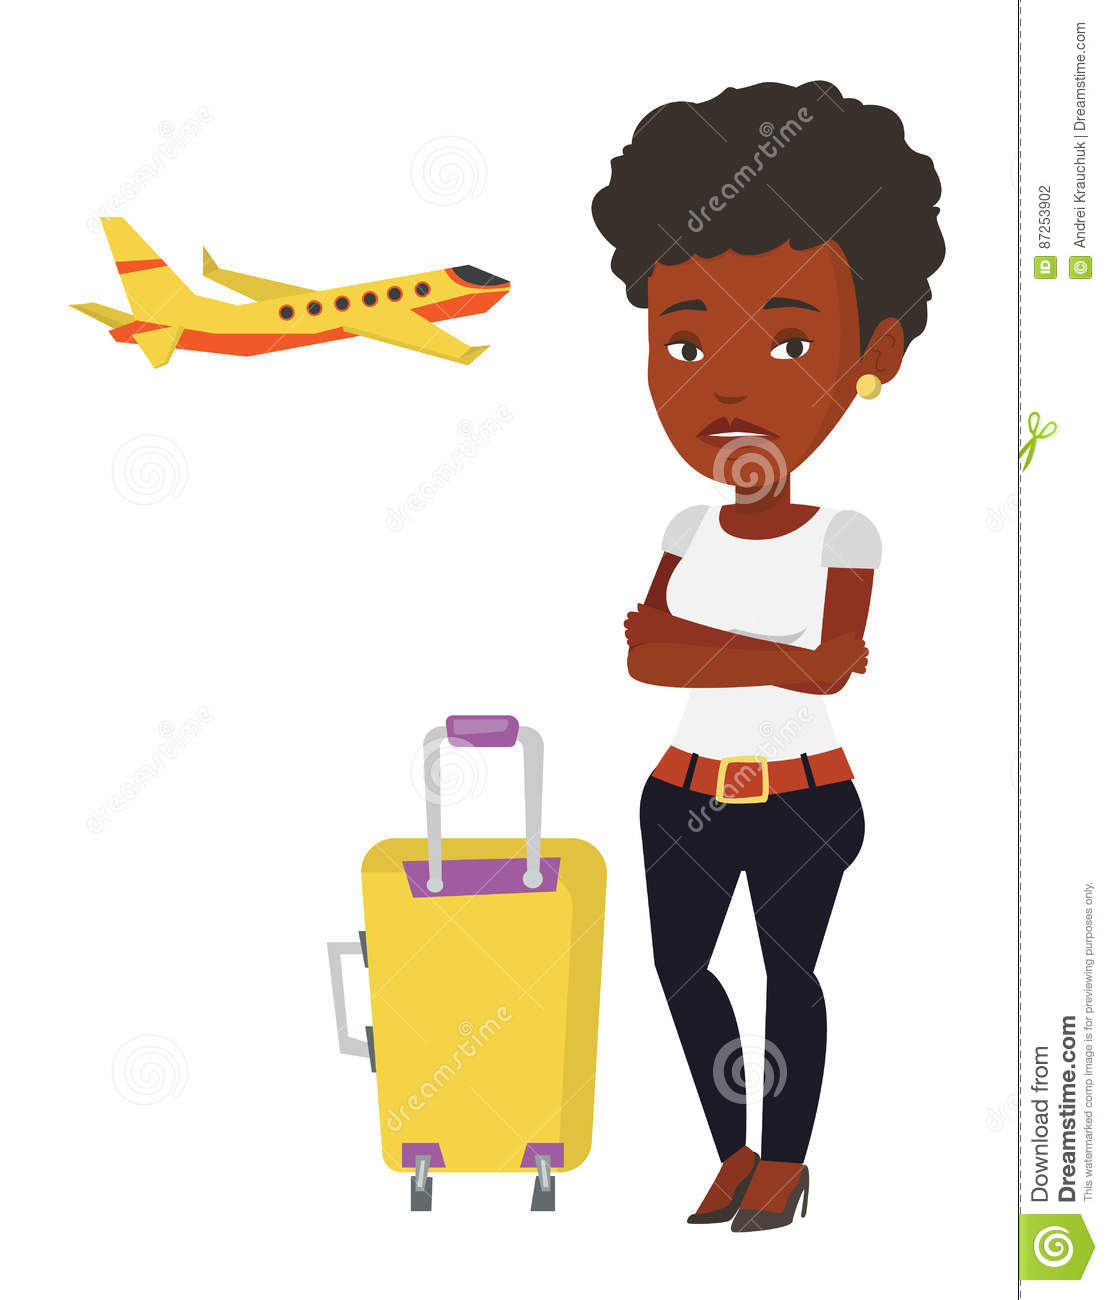 Young woman suffering from fear of flying.